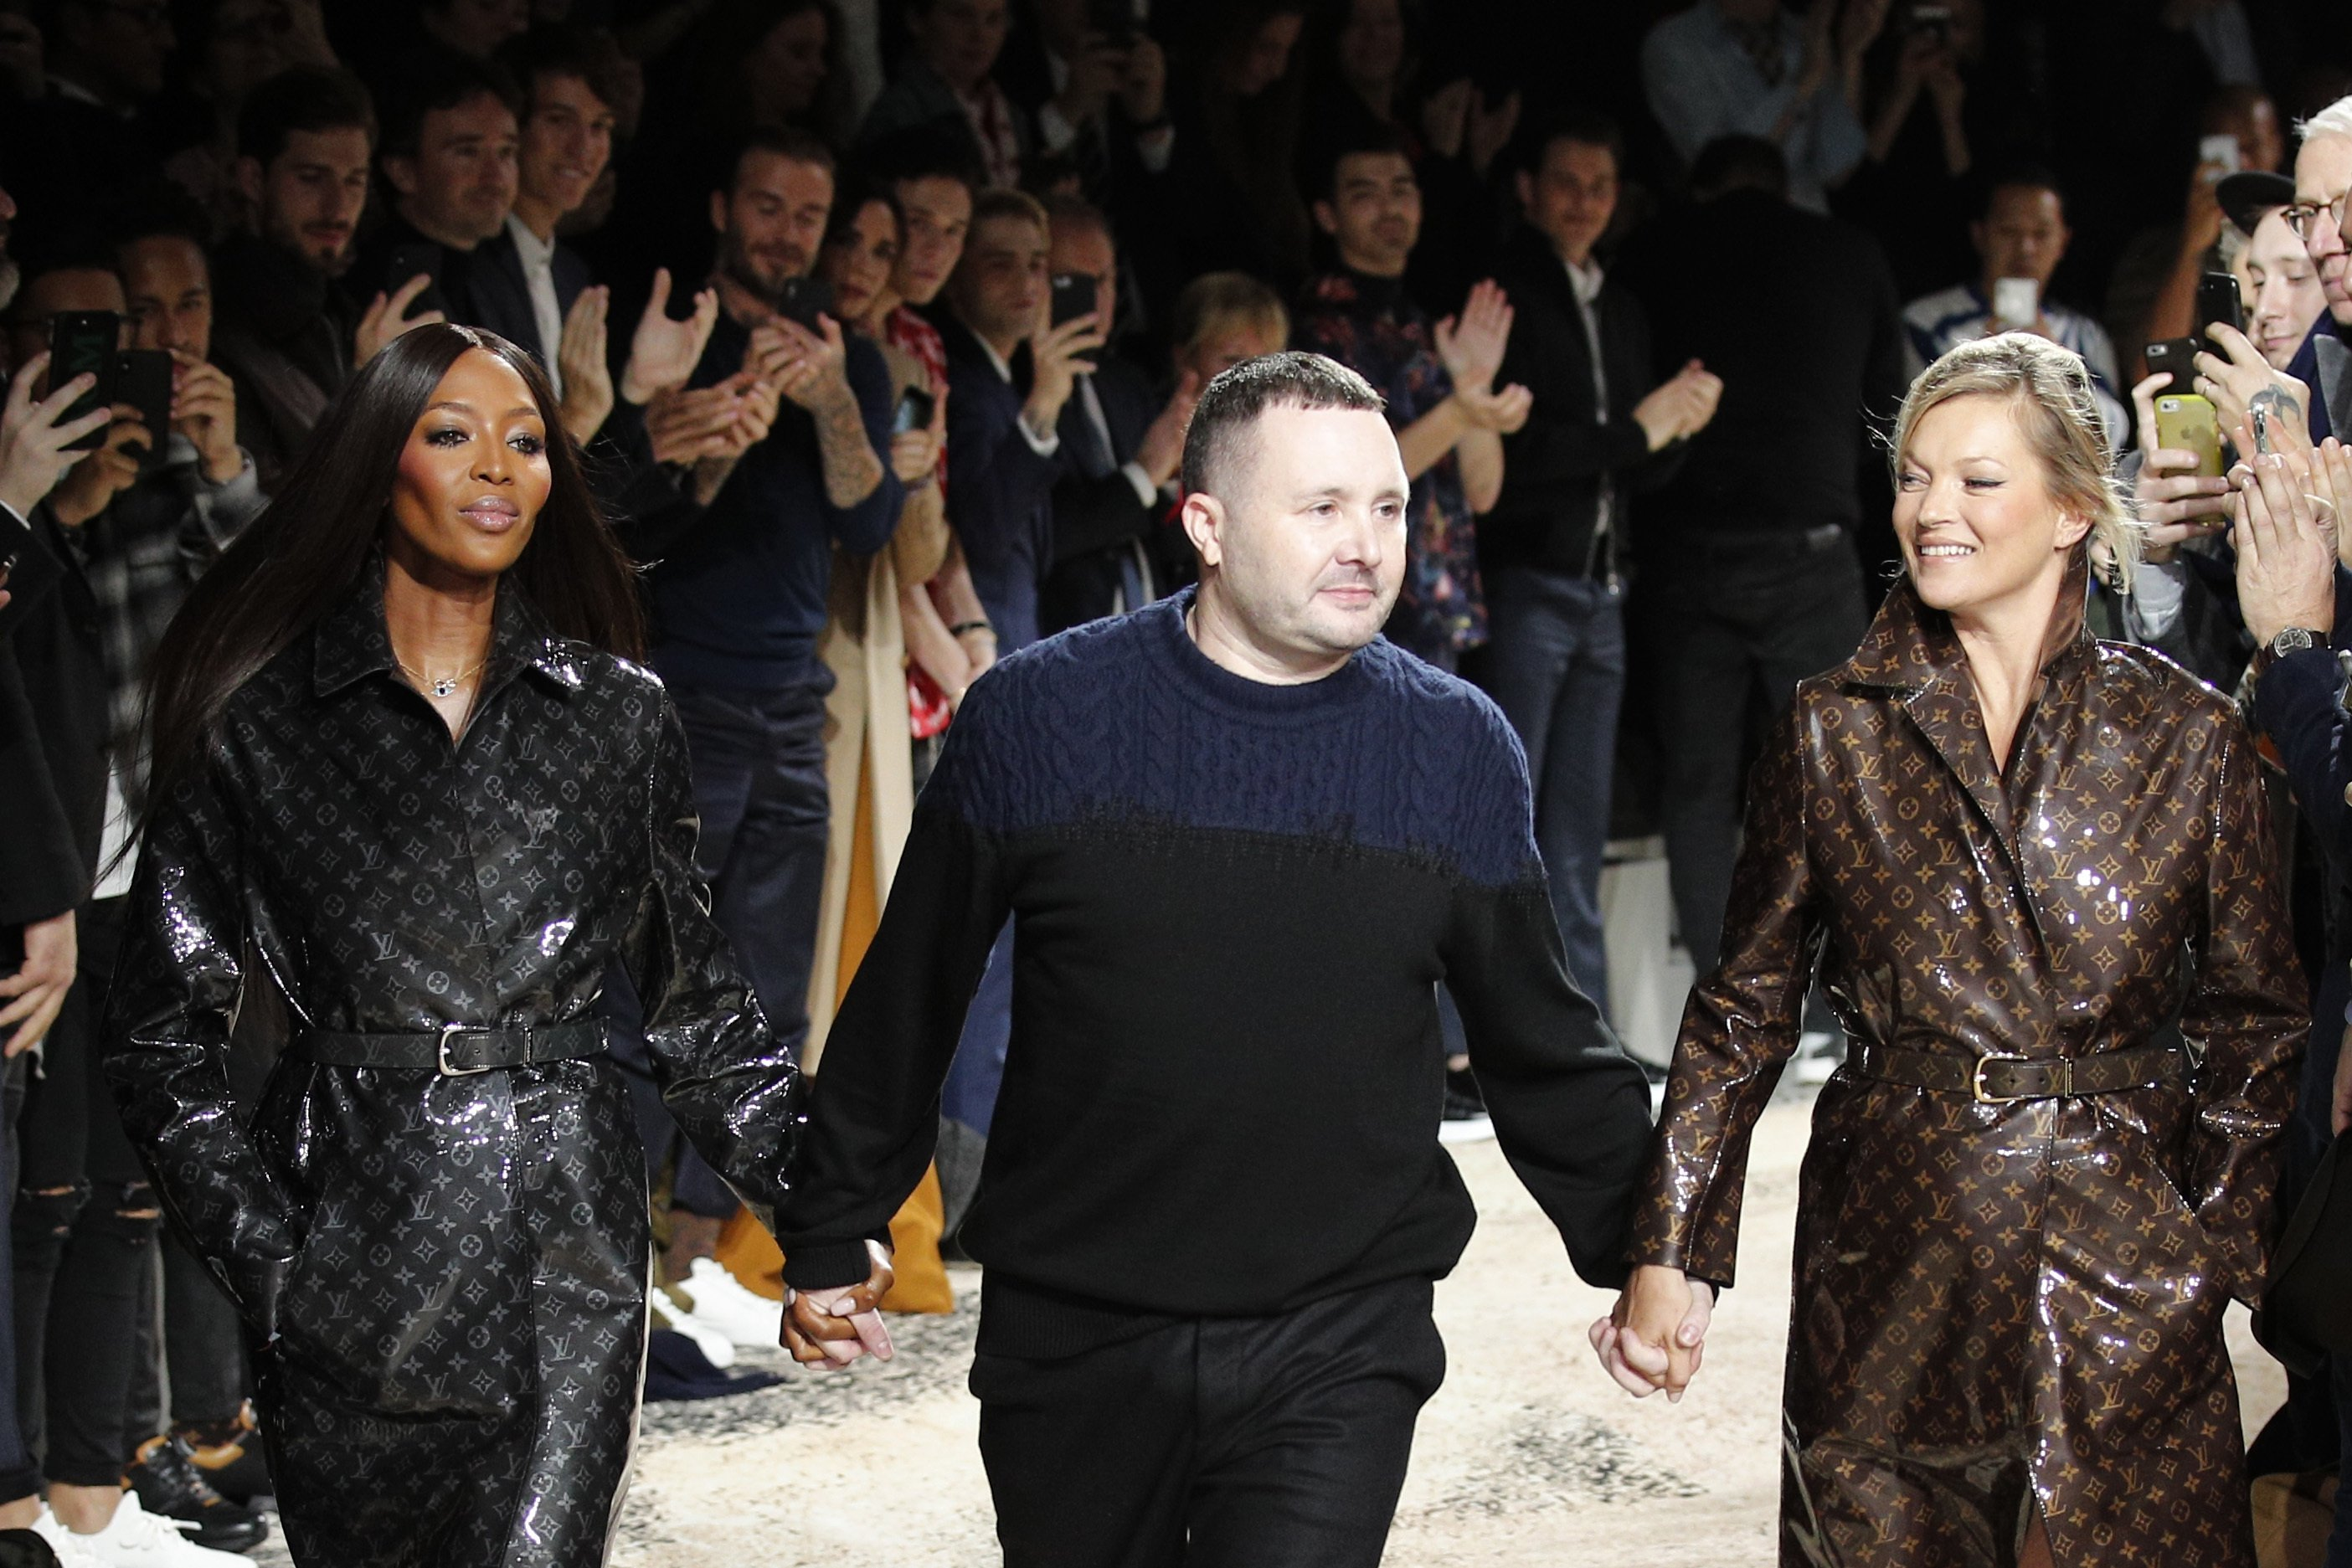 Designer Kim Jones (C) accepts applause as he walks with models Kate Moss (R) and Naomi Campbell (L) after his Louis Vuitton Men's Fall-Winter 2018-2019 fashion collection was presented in Paris, France, Jan.18, 2018. (AP Photo)